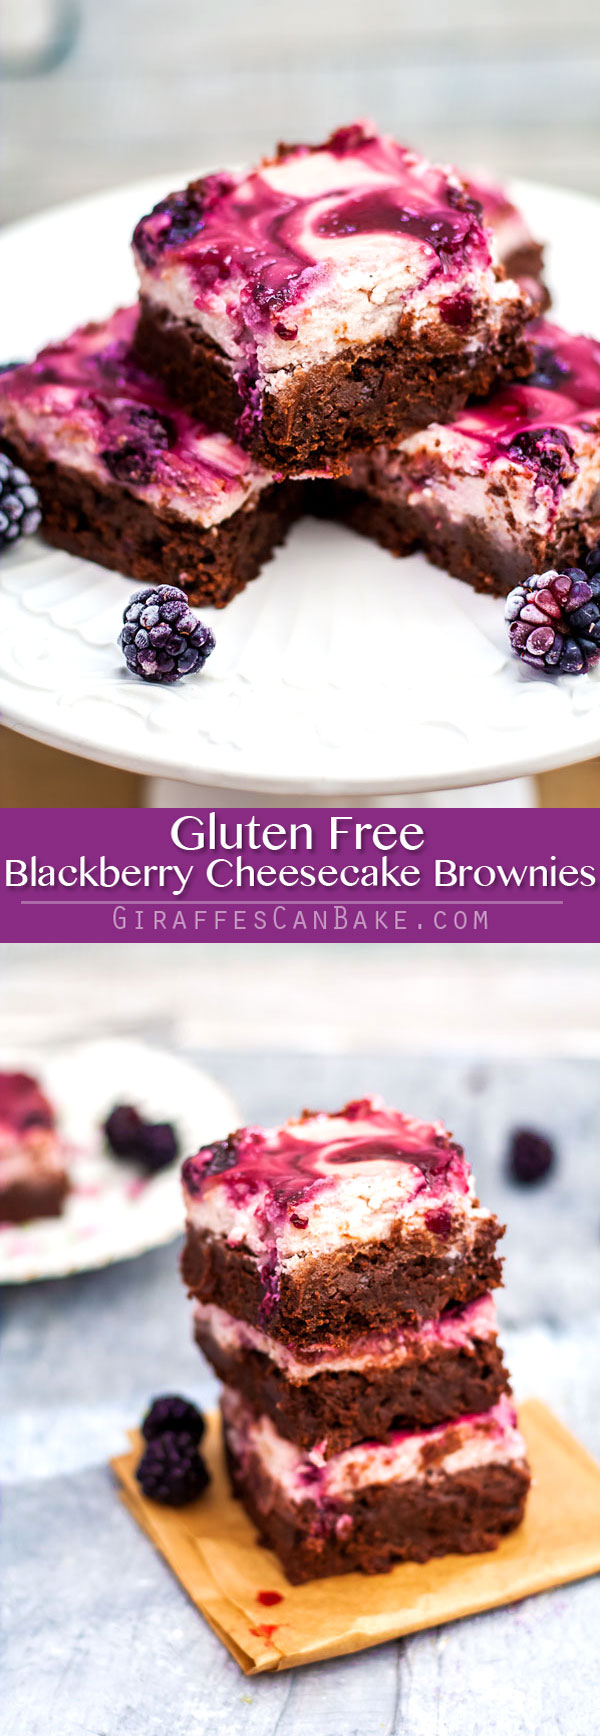 These #GlutenFree Blackberry Cheesecake Brownies are chocolatey, creamy, and fruity! Fudgy brownies are topped with a thick and creamy blackberry cheesecake. So quick and easy to make, and a real crowd pleaser. Gluten free decadence! #brownies #blackberry #cheesecake #chocolate